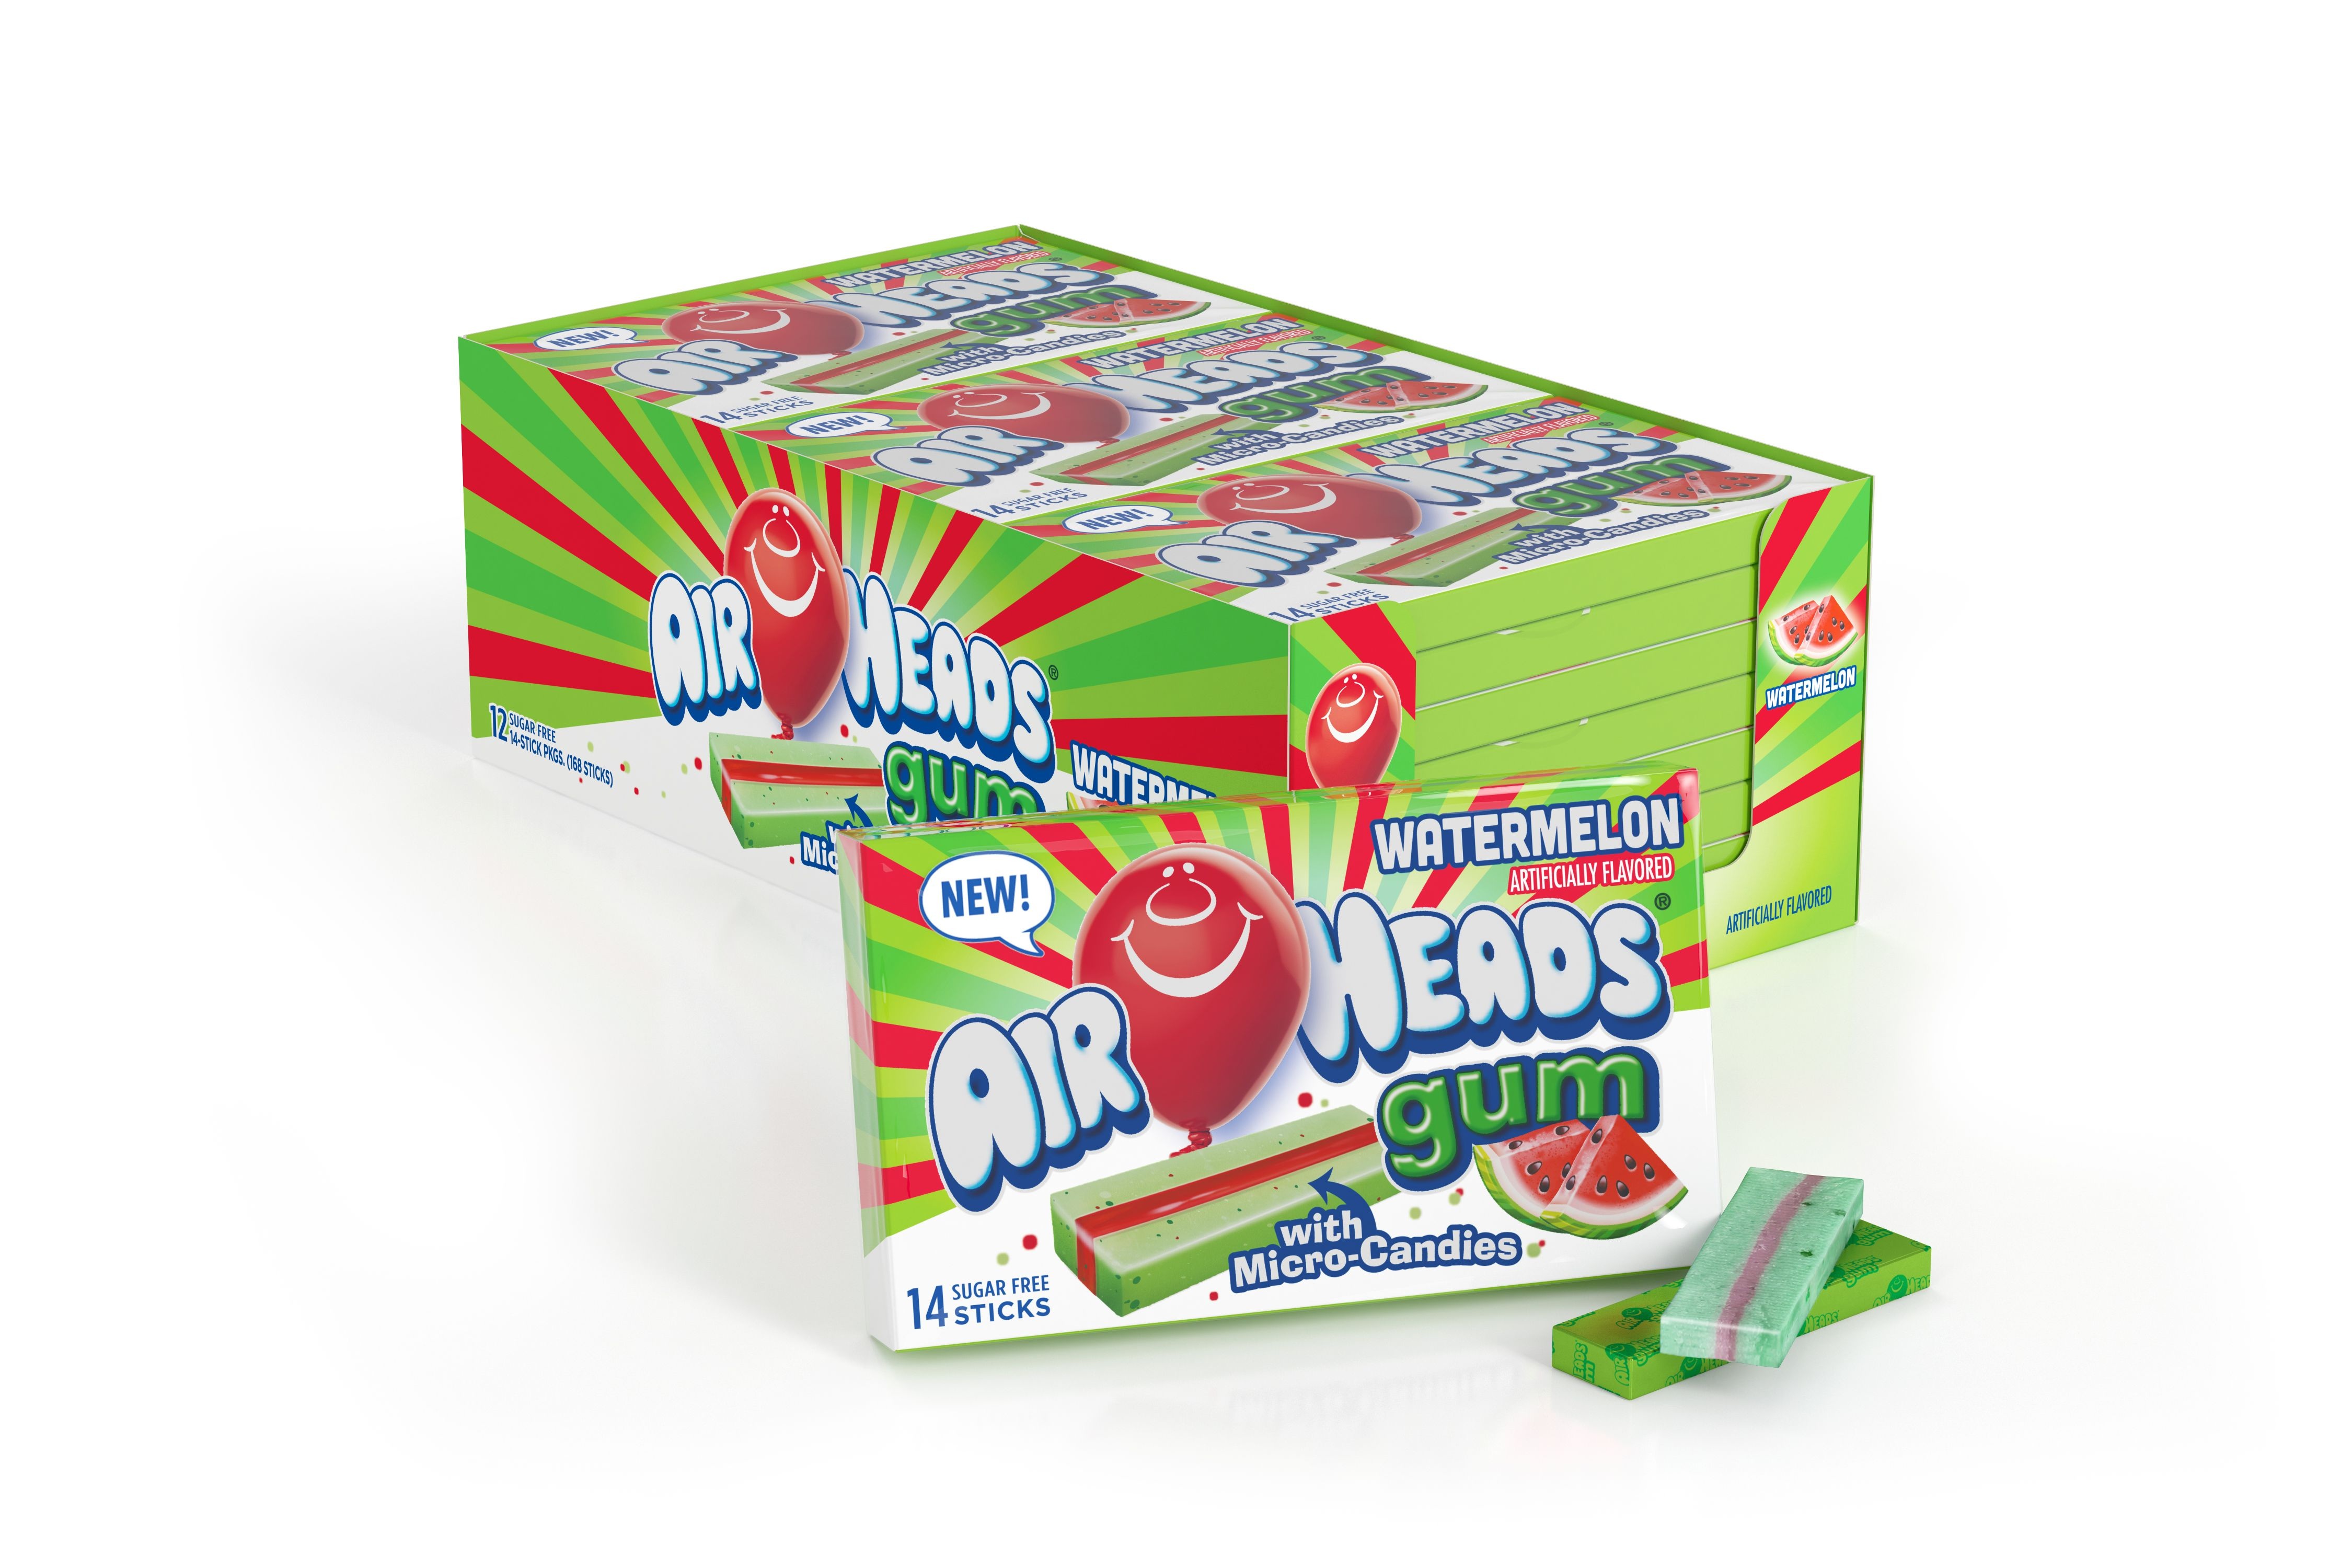 Airheads Gum, Watermelon, Sugar Free with Xylitol, 14 Sticks (Pack of 12)